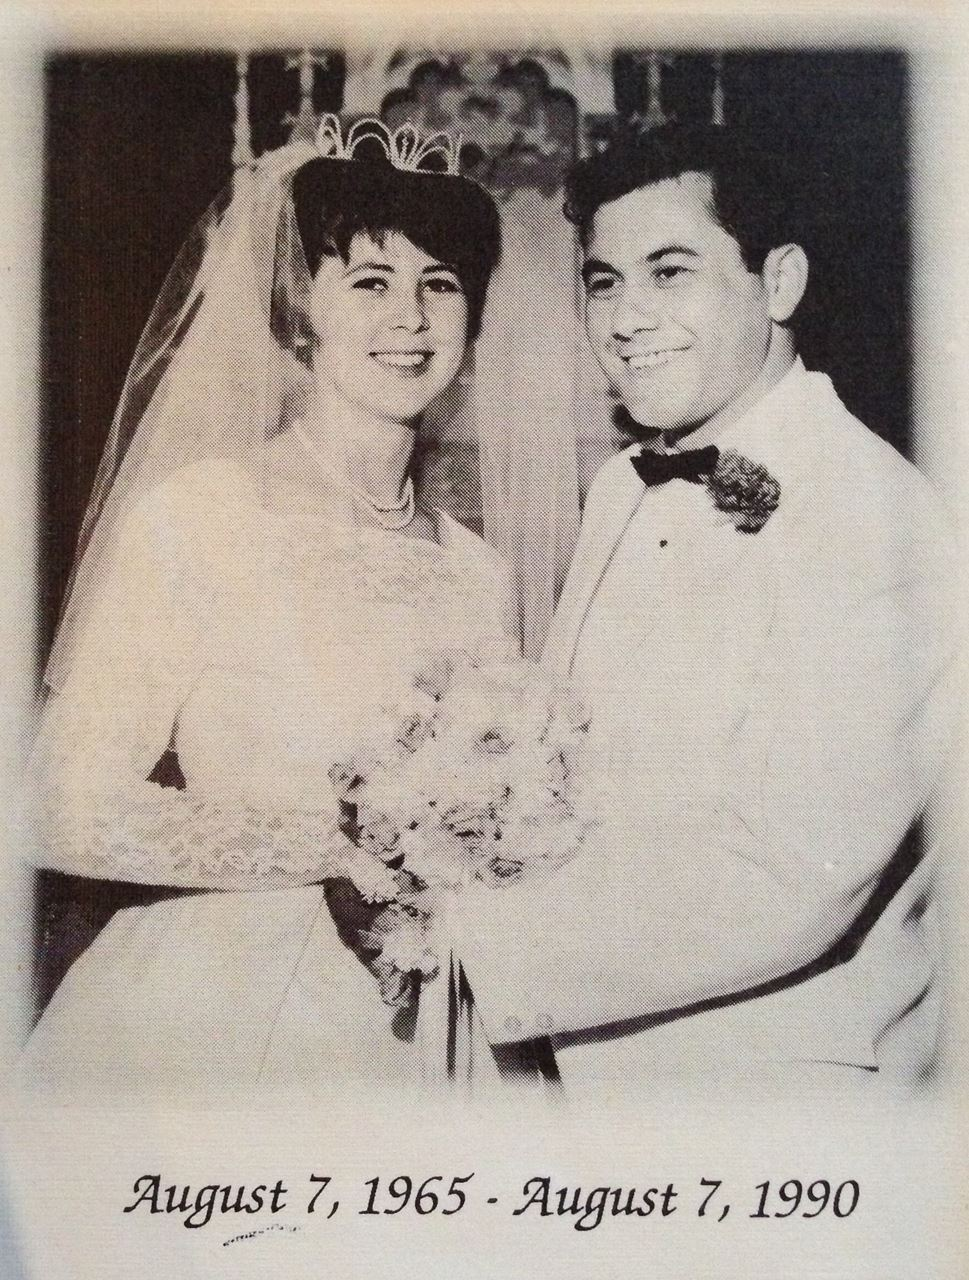 Sandi and Ron on their wedding day!